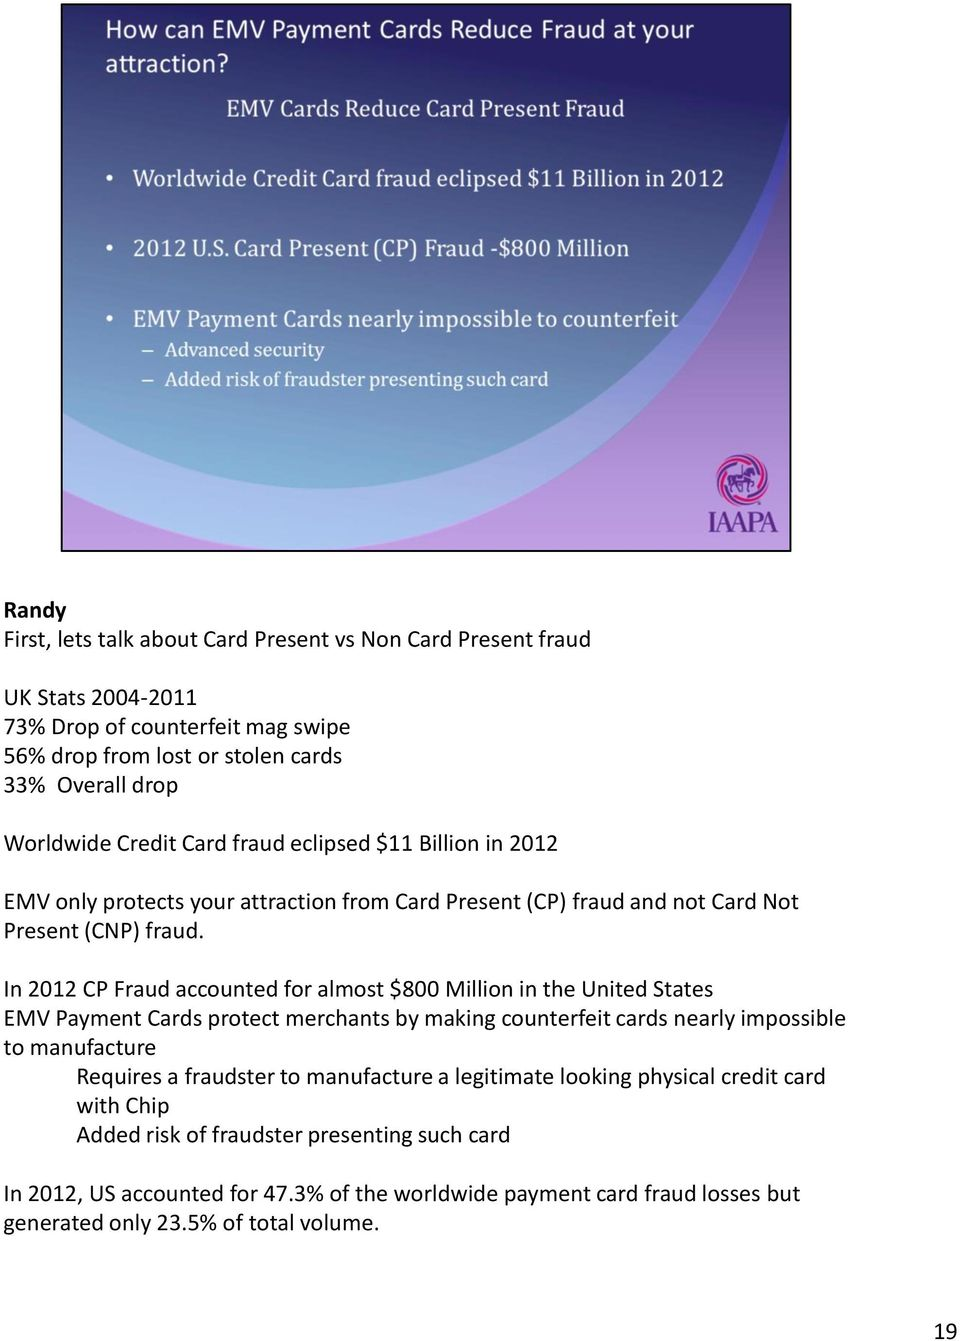 In 2012 CP Fraud accounted for almost $800 Million in the United States EMV Payment Cards protect merchants by making counterfeit cards nearly impossible to manufacture Requires a